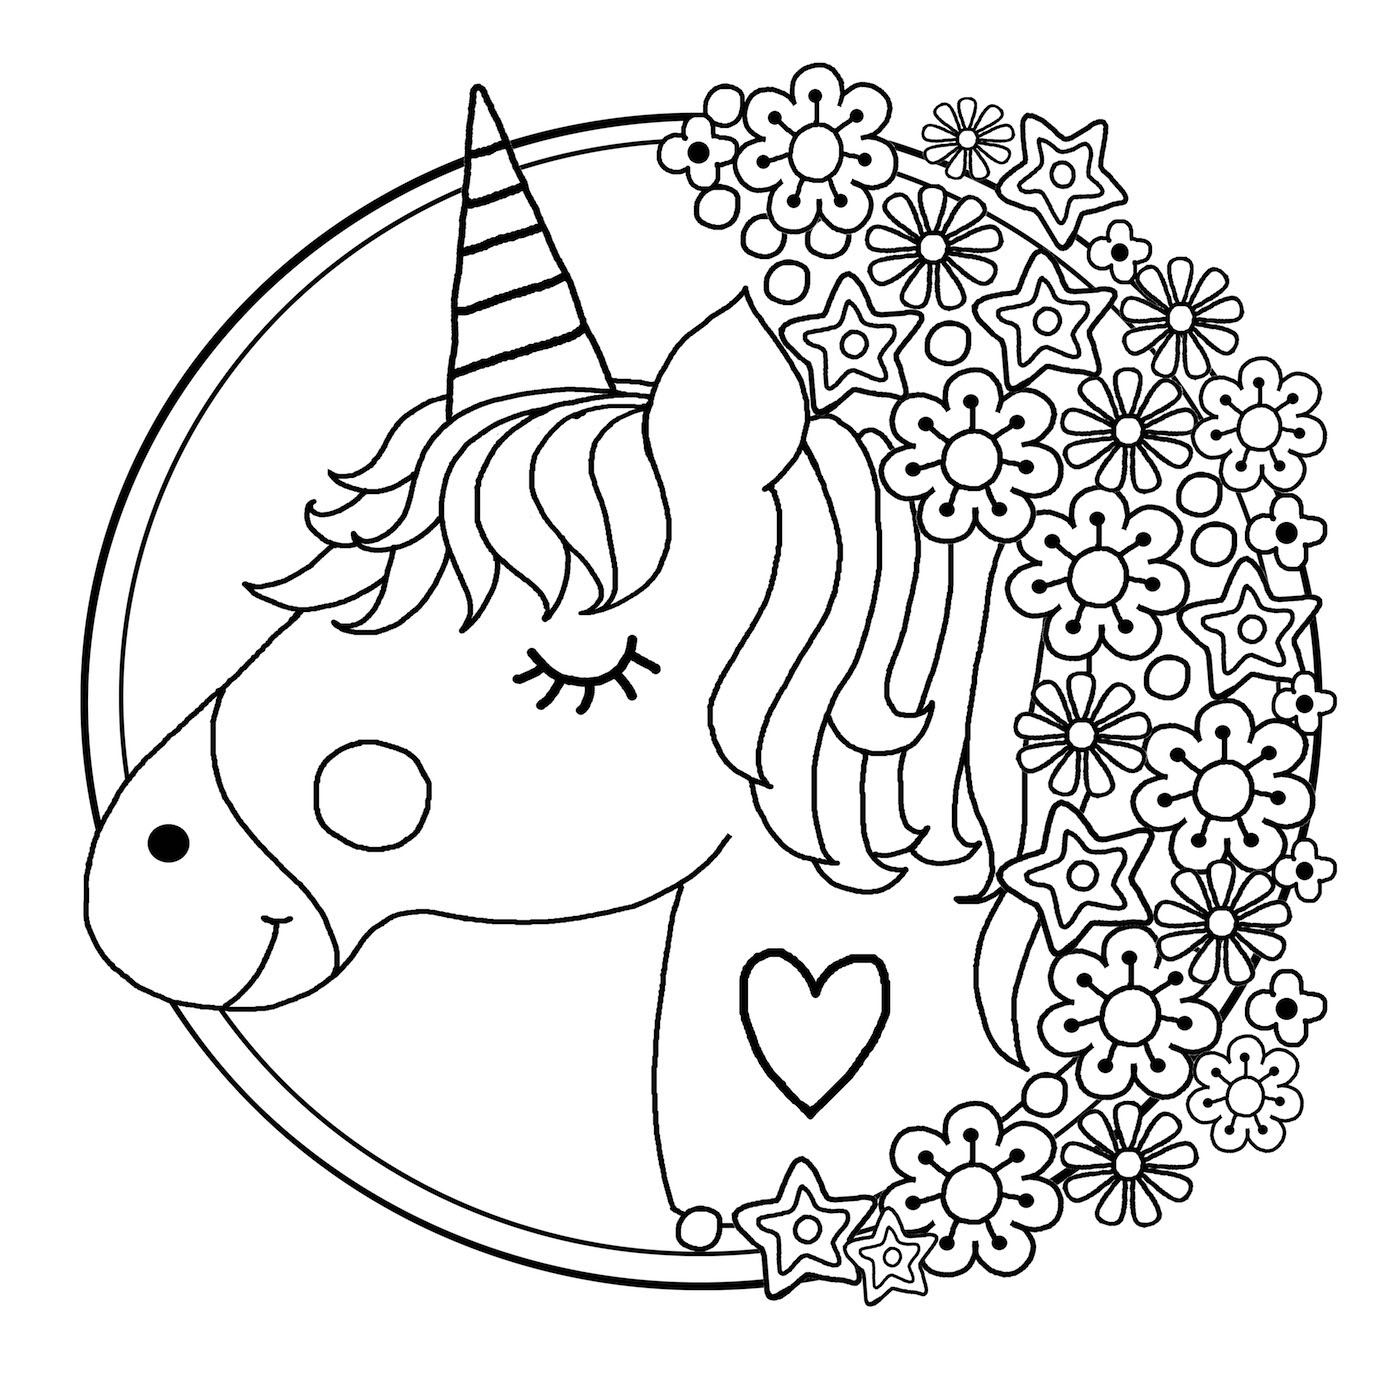 free printable coloring pages of unicorns downloadable unicorn colouring page michael o39mara books unicorns printable pages of coloring free